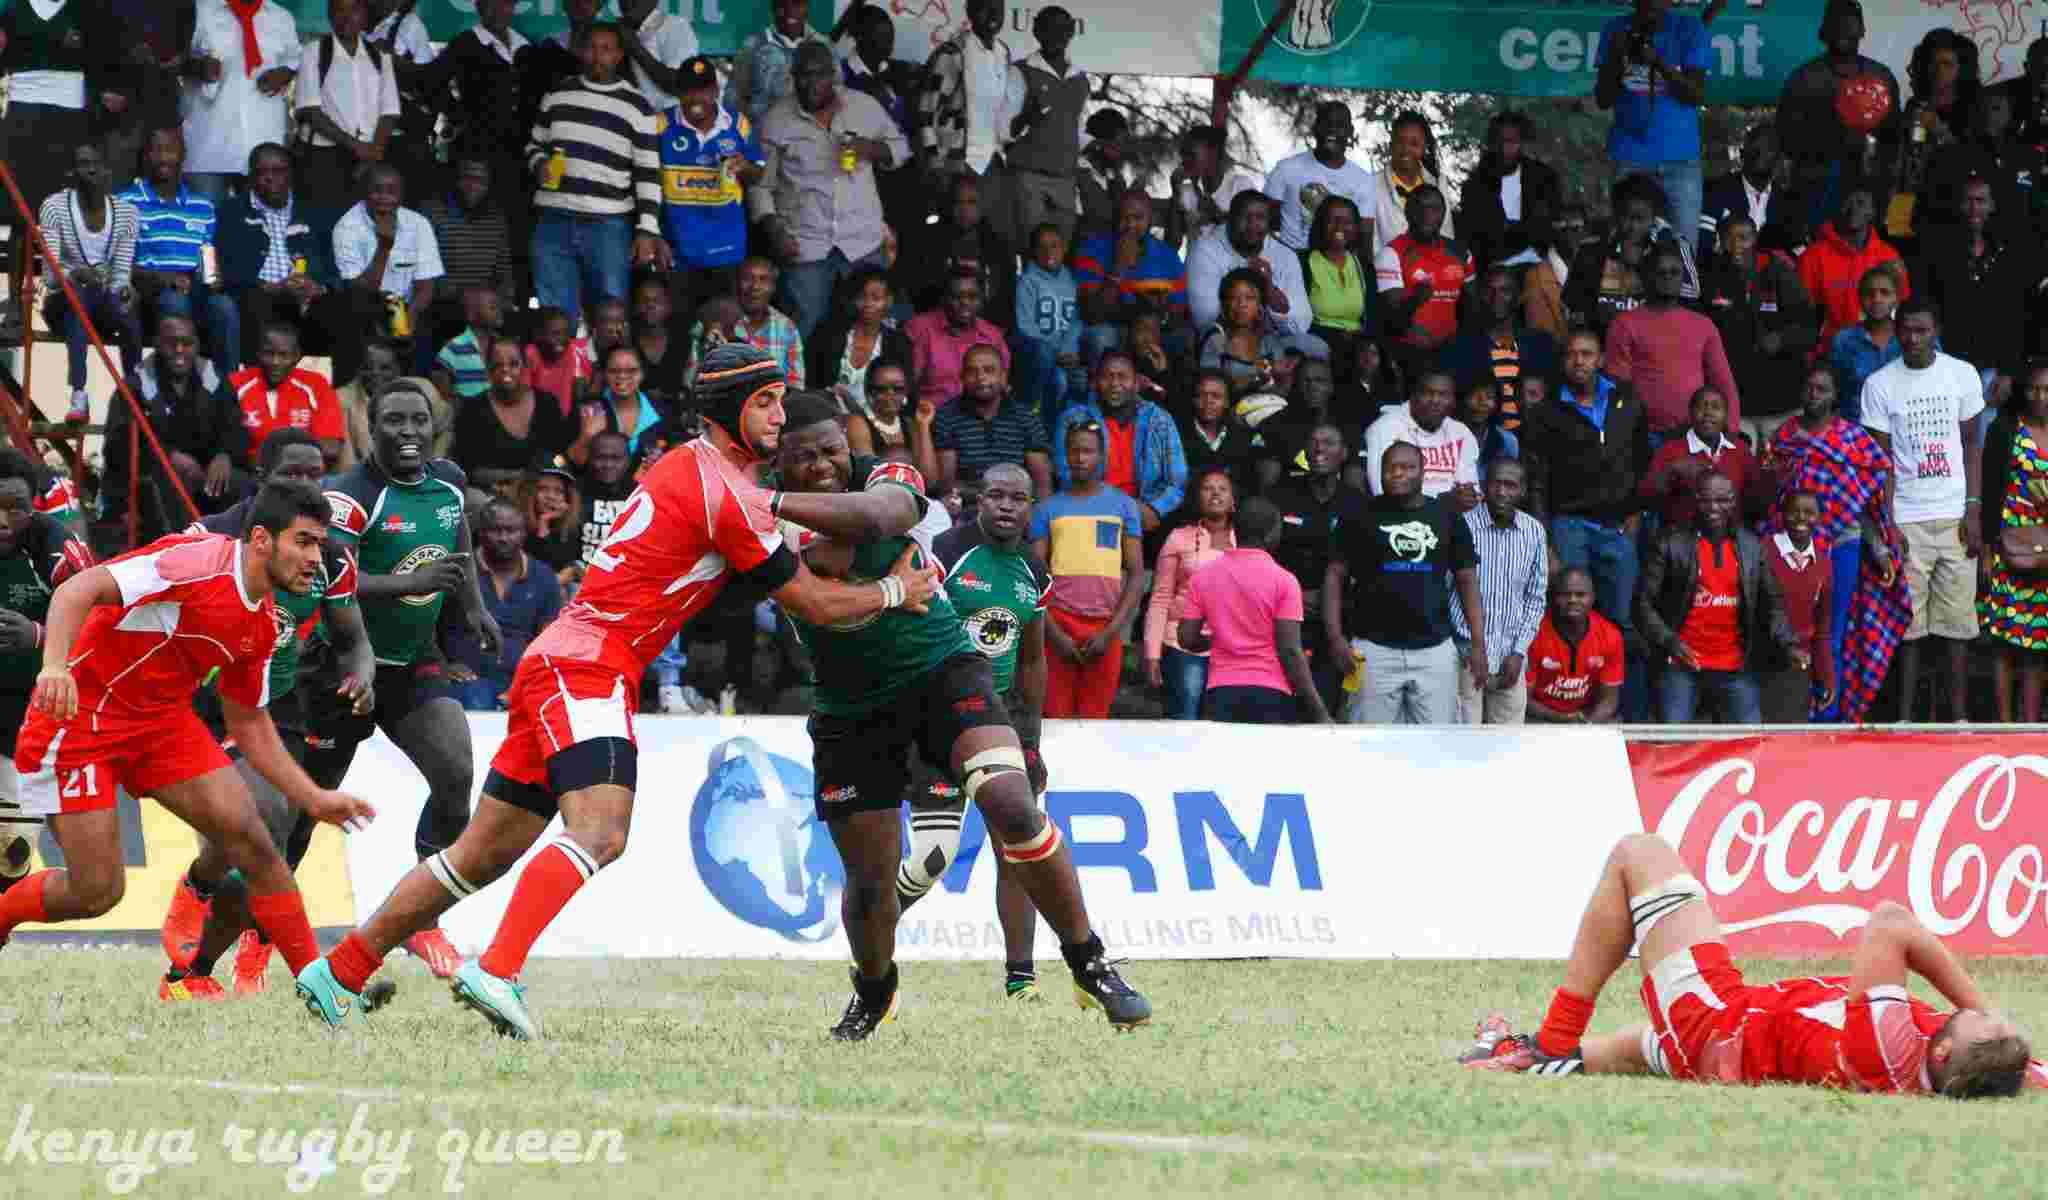 Kenya 15s are eager to express themselves : Dominique Habimana